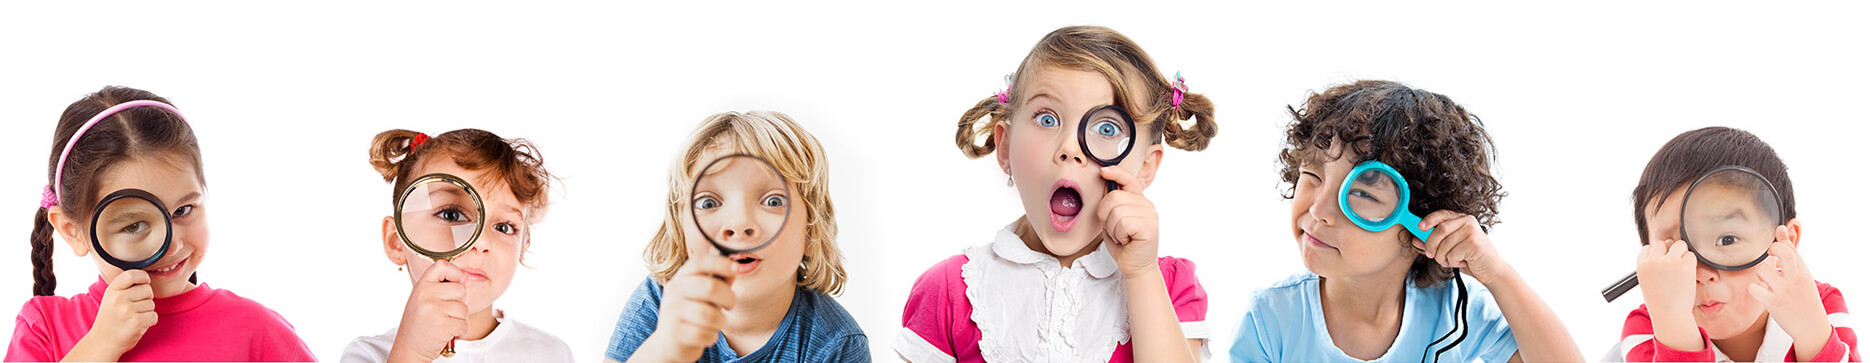 kids searching with magnifying glasses